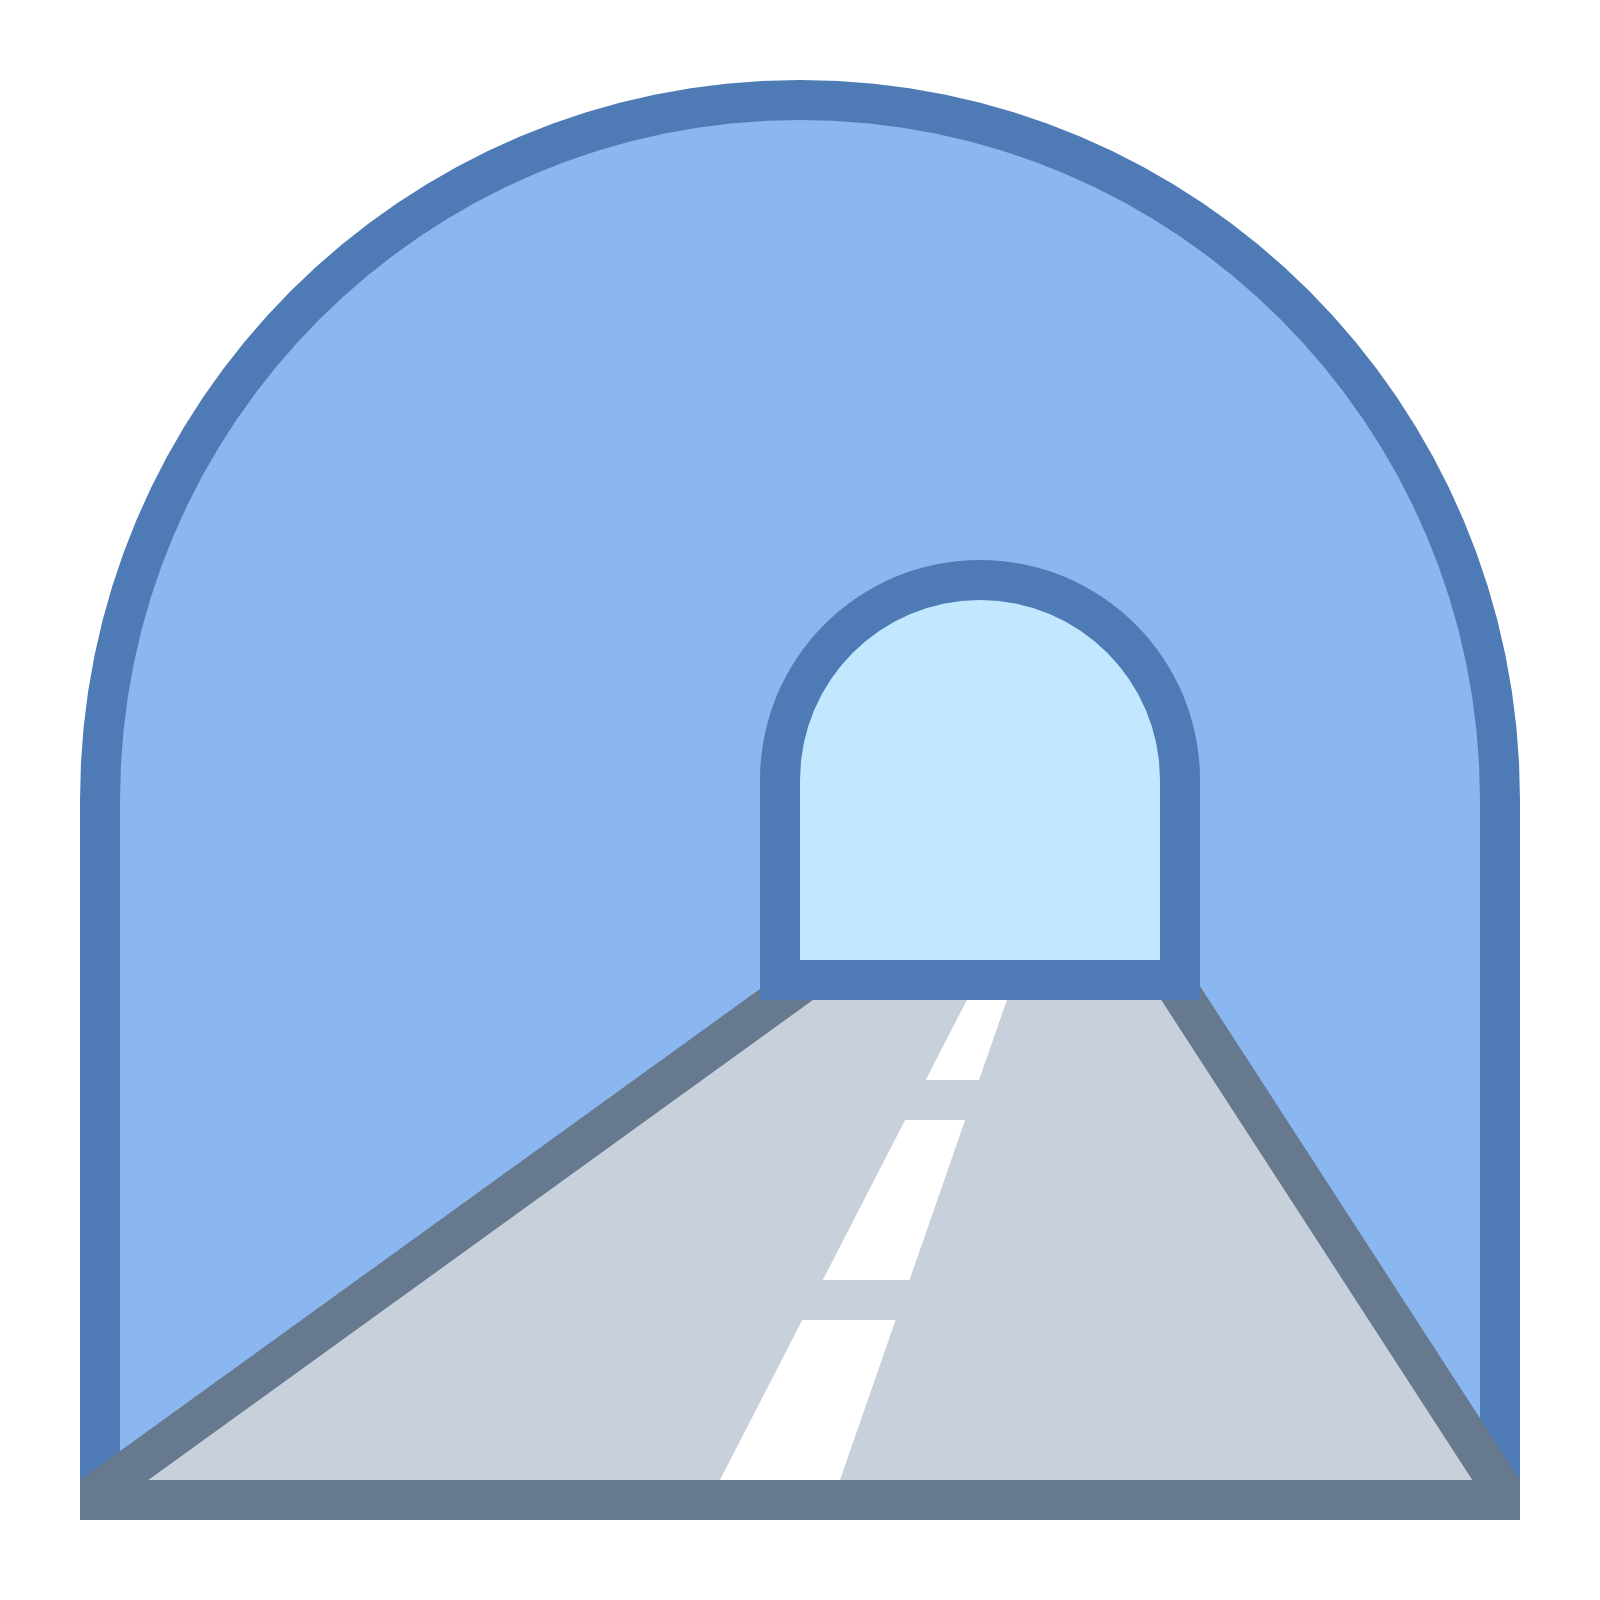 Tunnel Download Icon #38498.